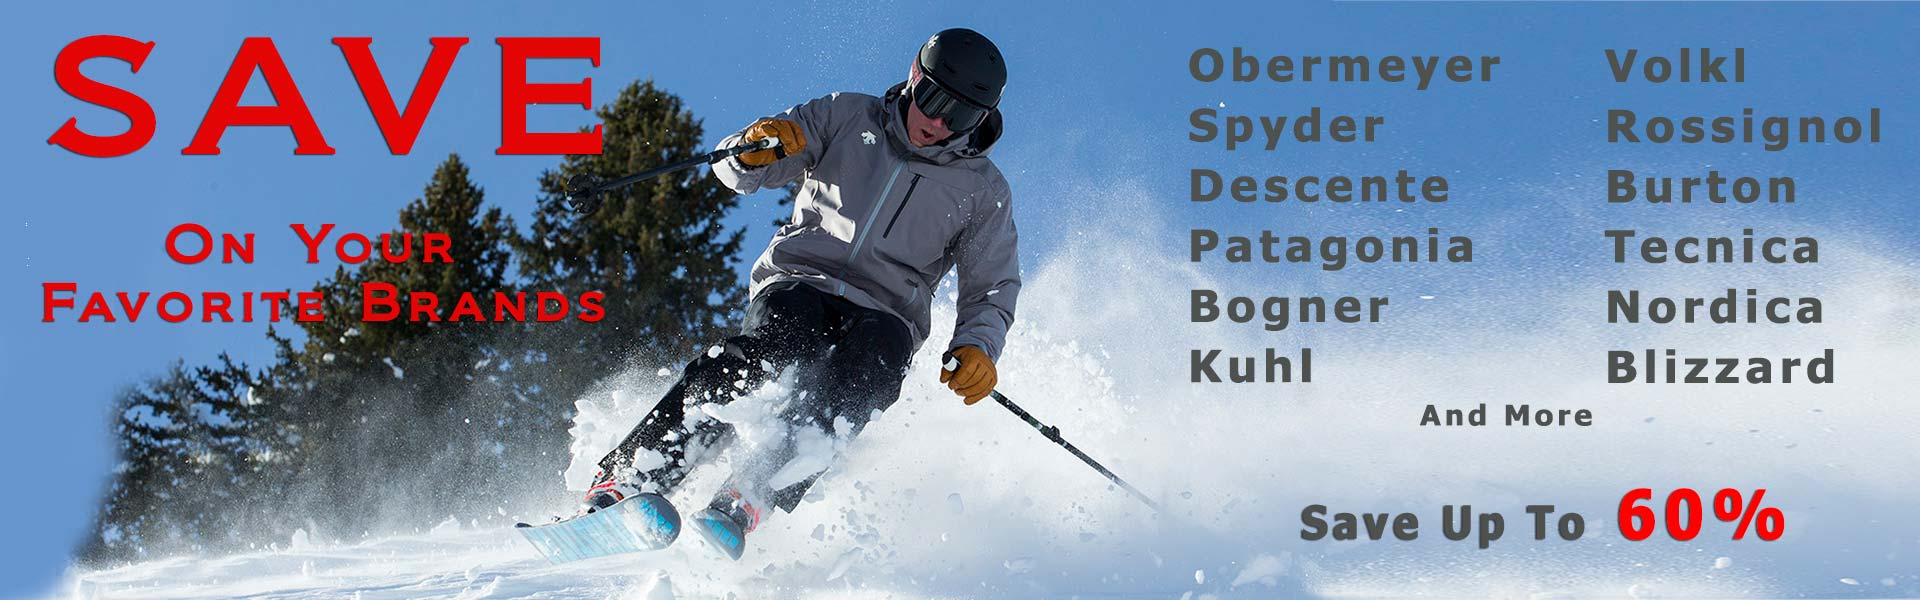 Huge Savings on Ski Clothing & Equipment